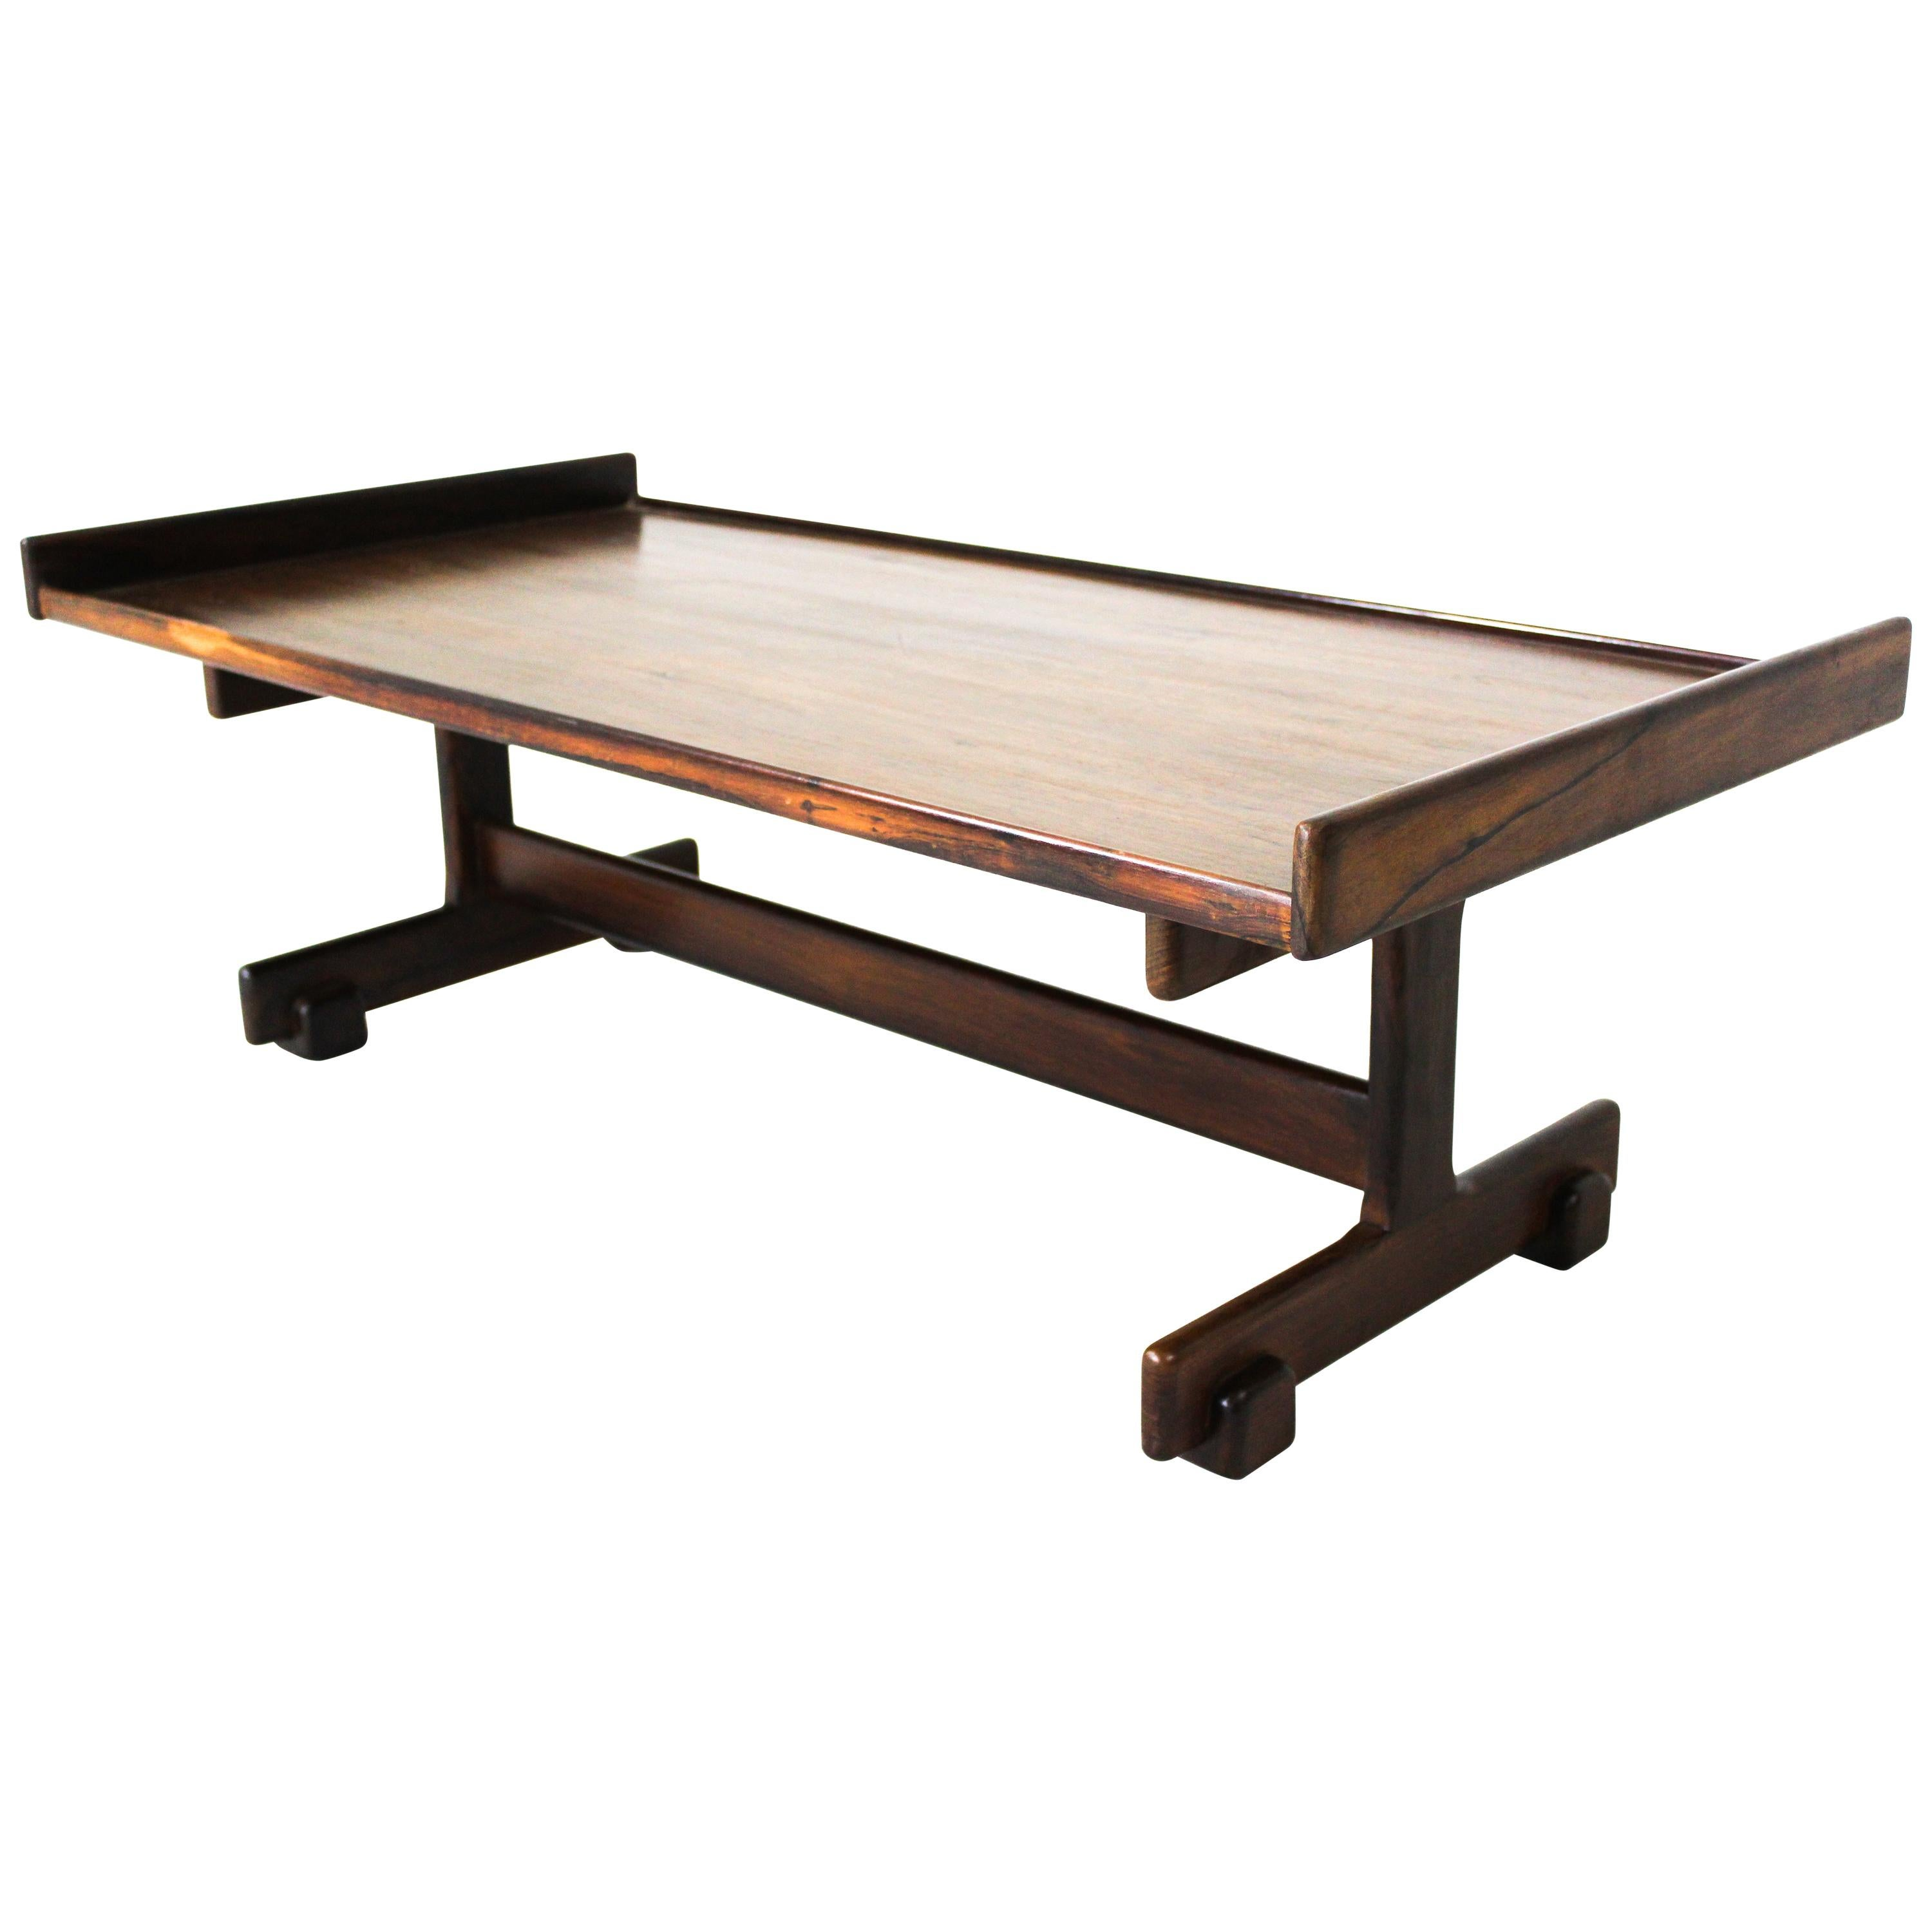 Mid-Century Modern Wood Center Table by Sergio Rodrigues, Brazil, 1960s